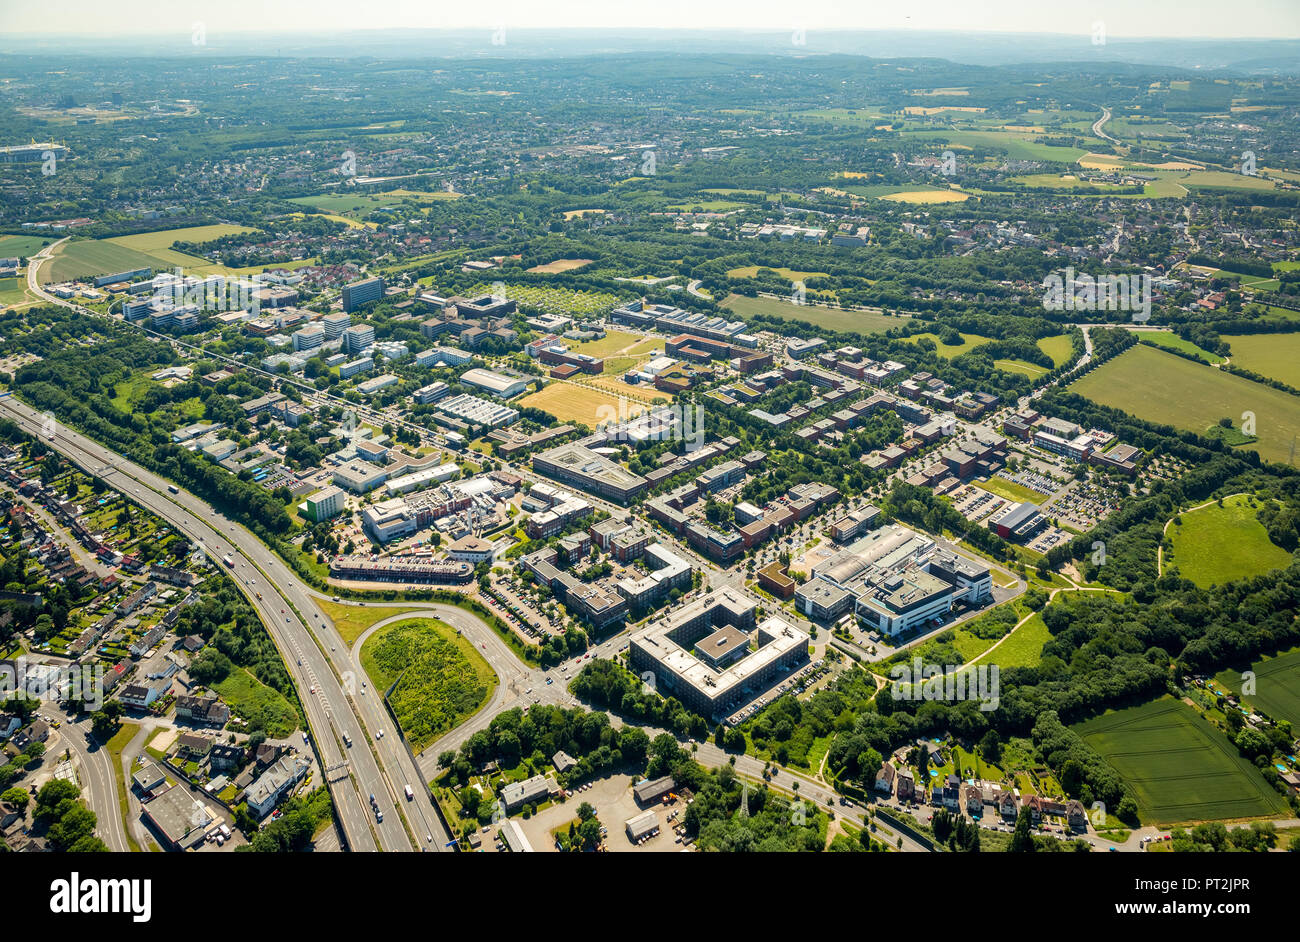 on the campus of the University of Dortmund, Ruhr area, - Stock Image